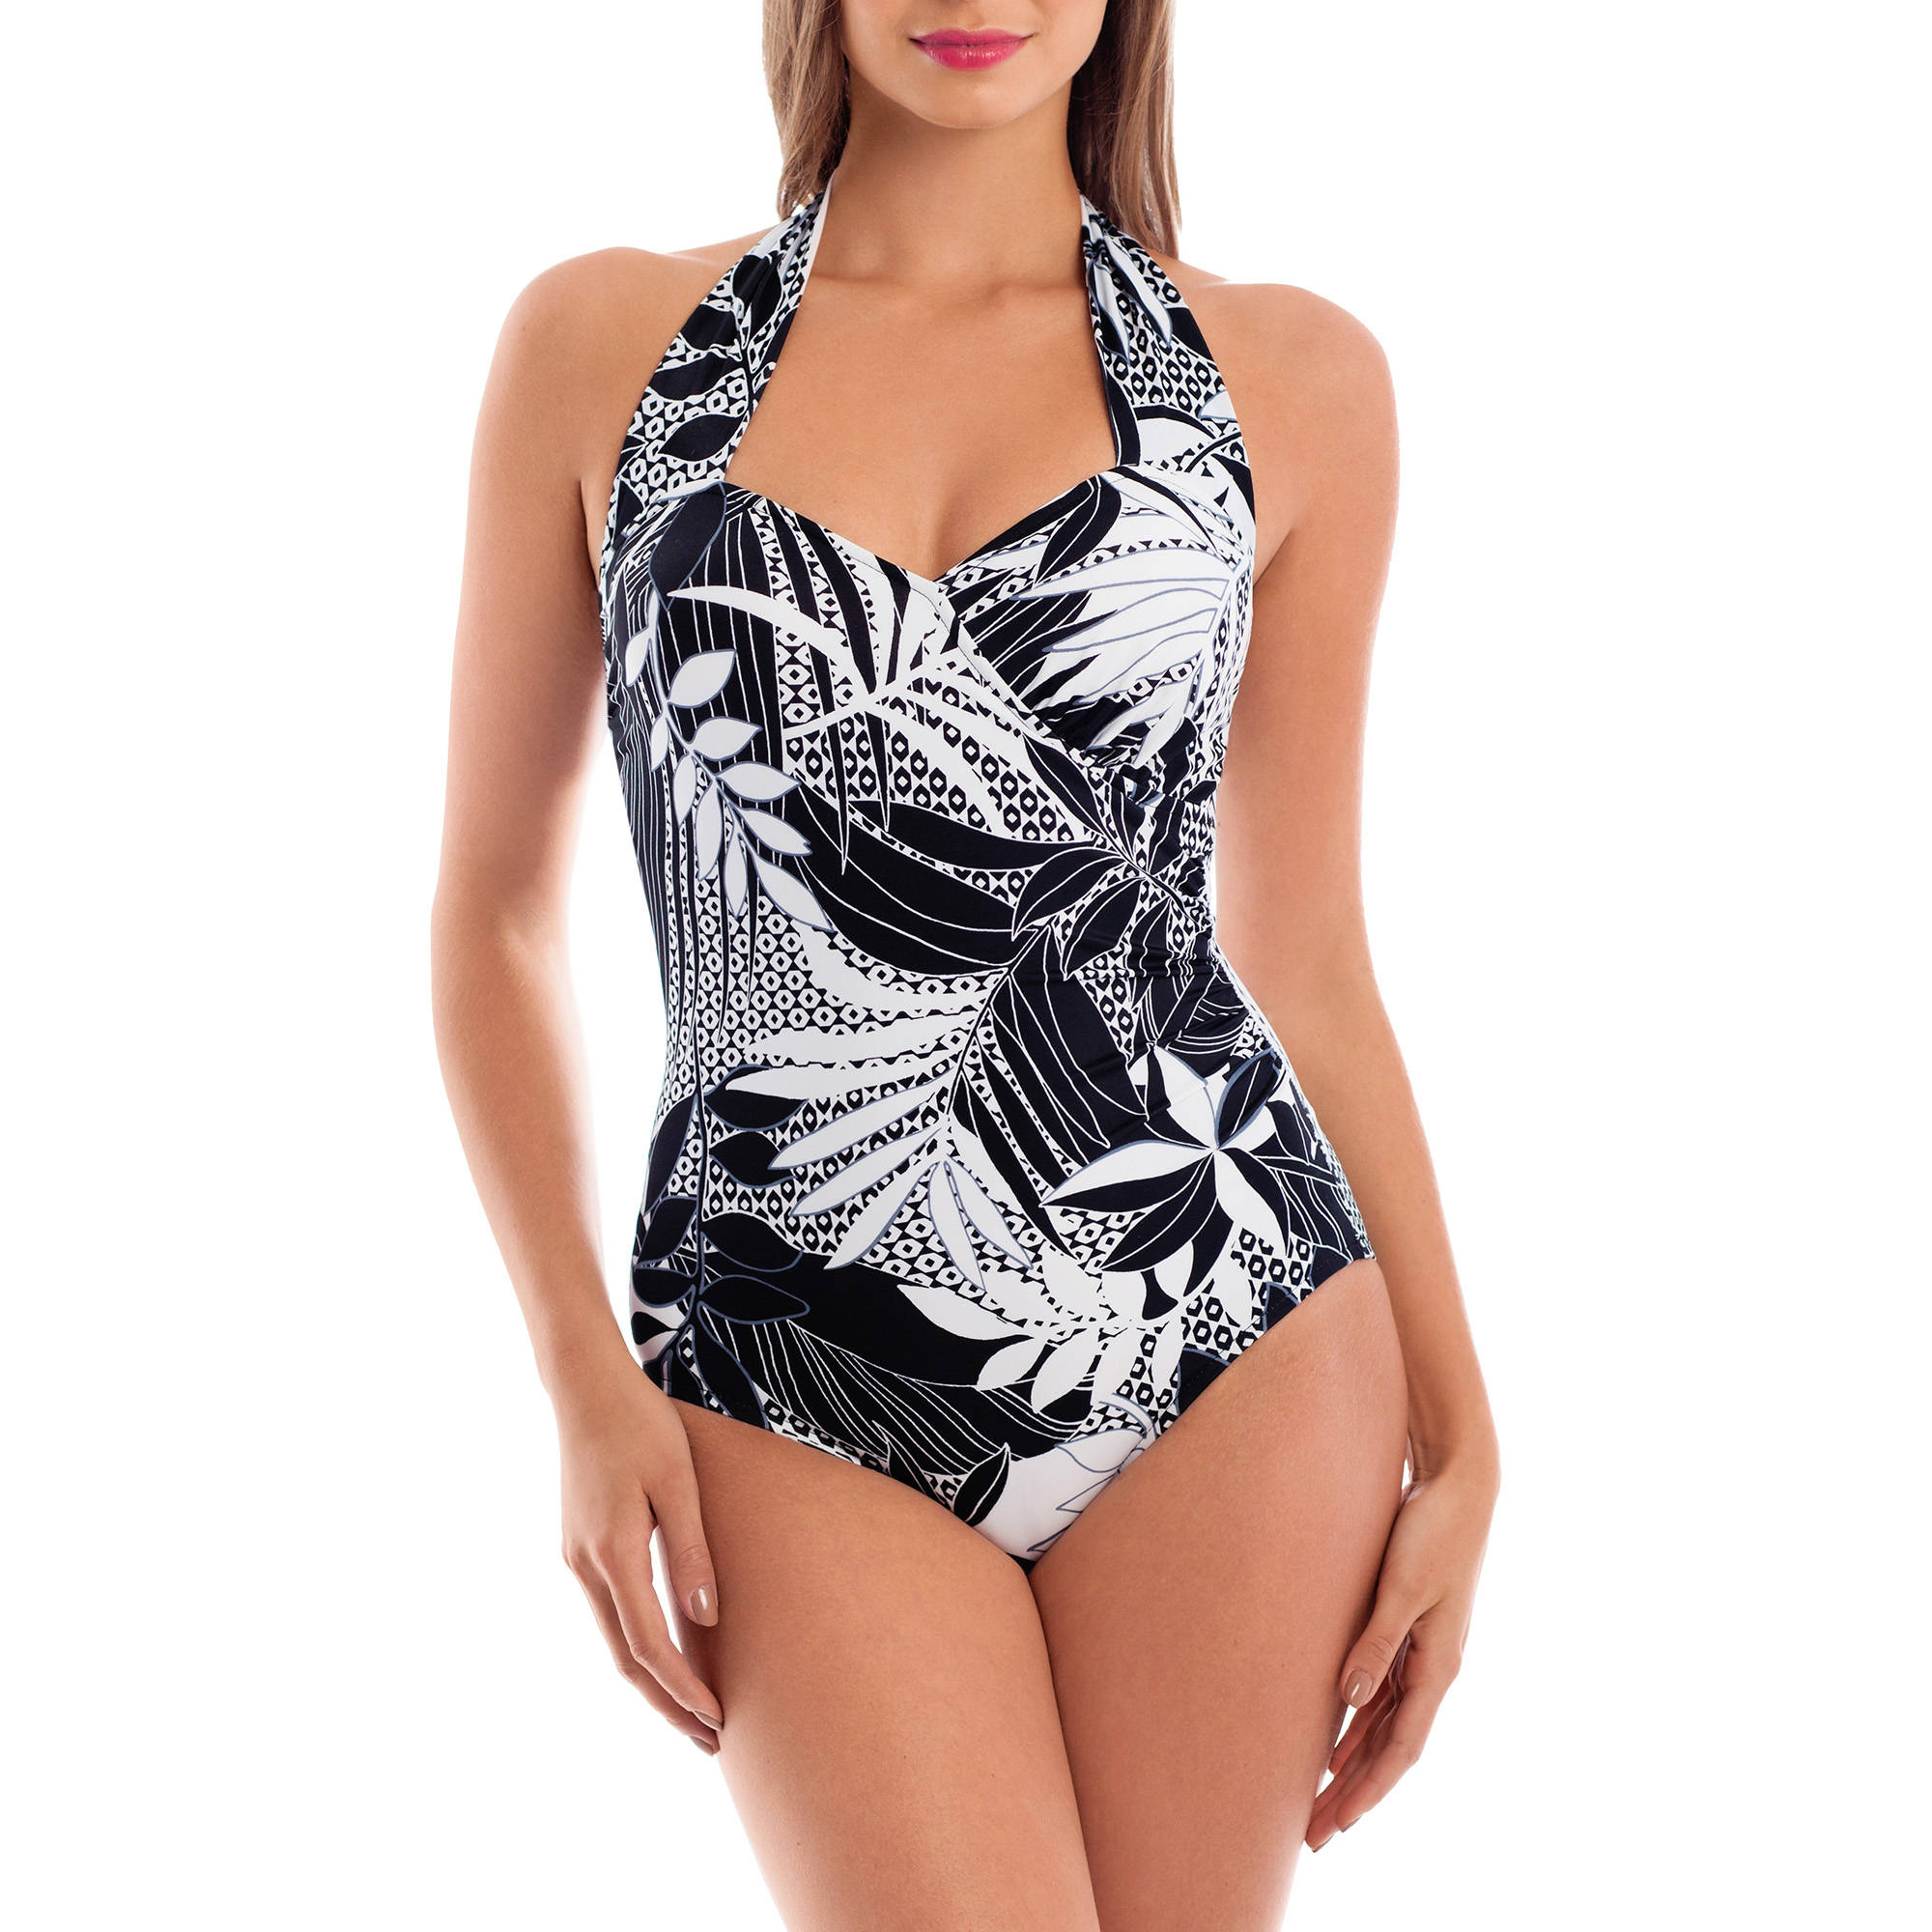 Suddenly Slim by Catalina Women's Slimming Side-Ruched One-Piece Swimsuit